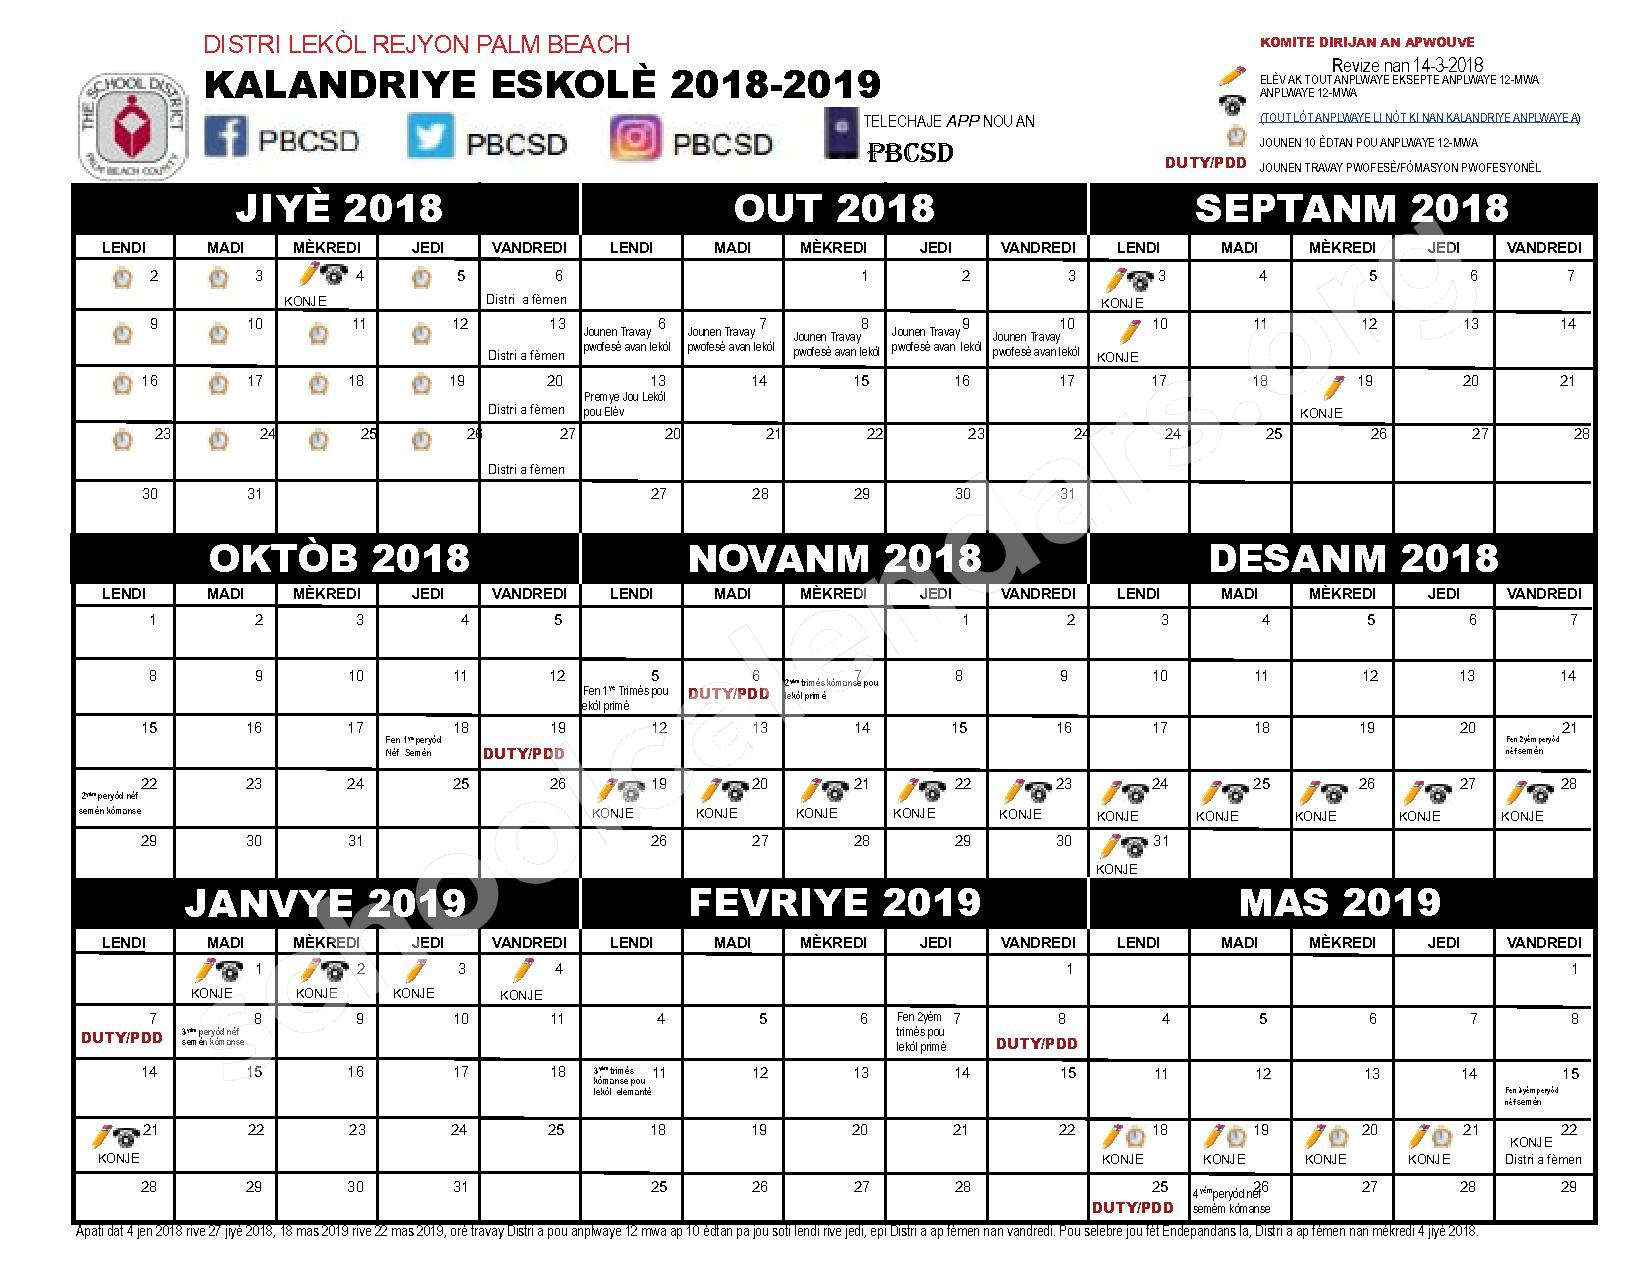 Palm Beach County Calendar 2019 2018   2019 KALANDRIYE ESKOLÈ | Palm Beach County School District